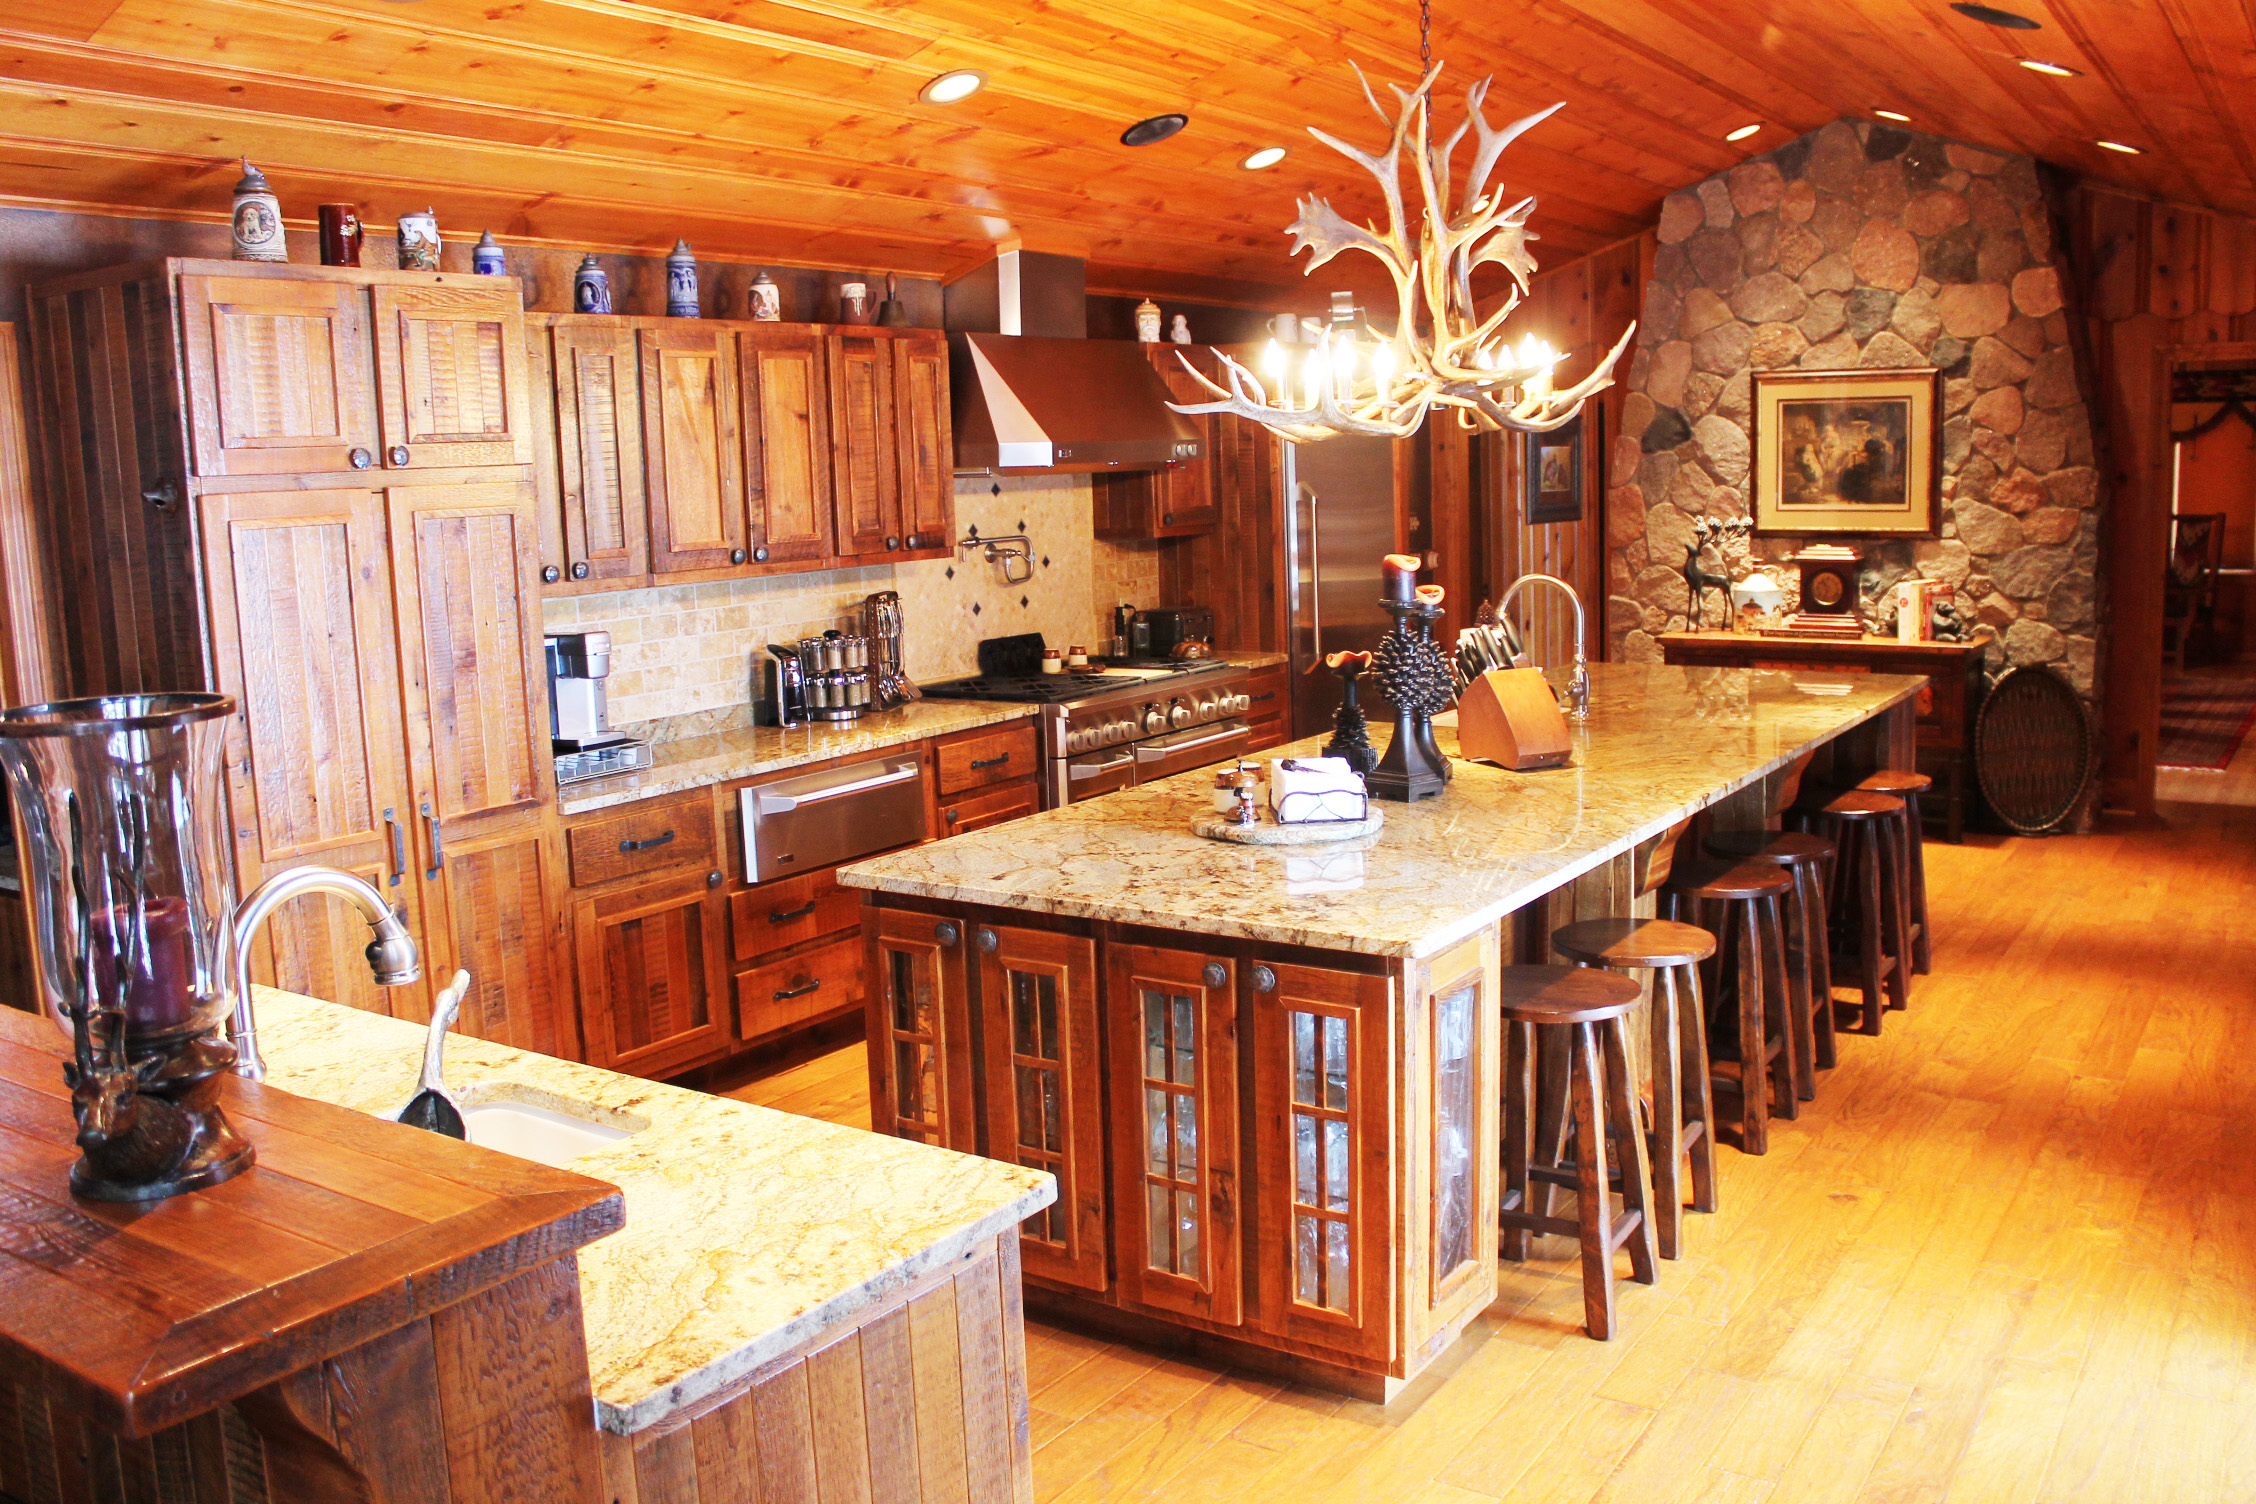 Hudson style cabinets.